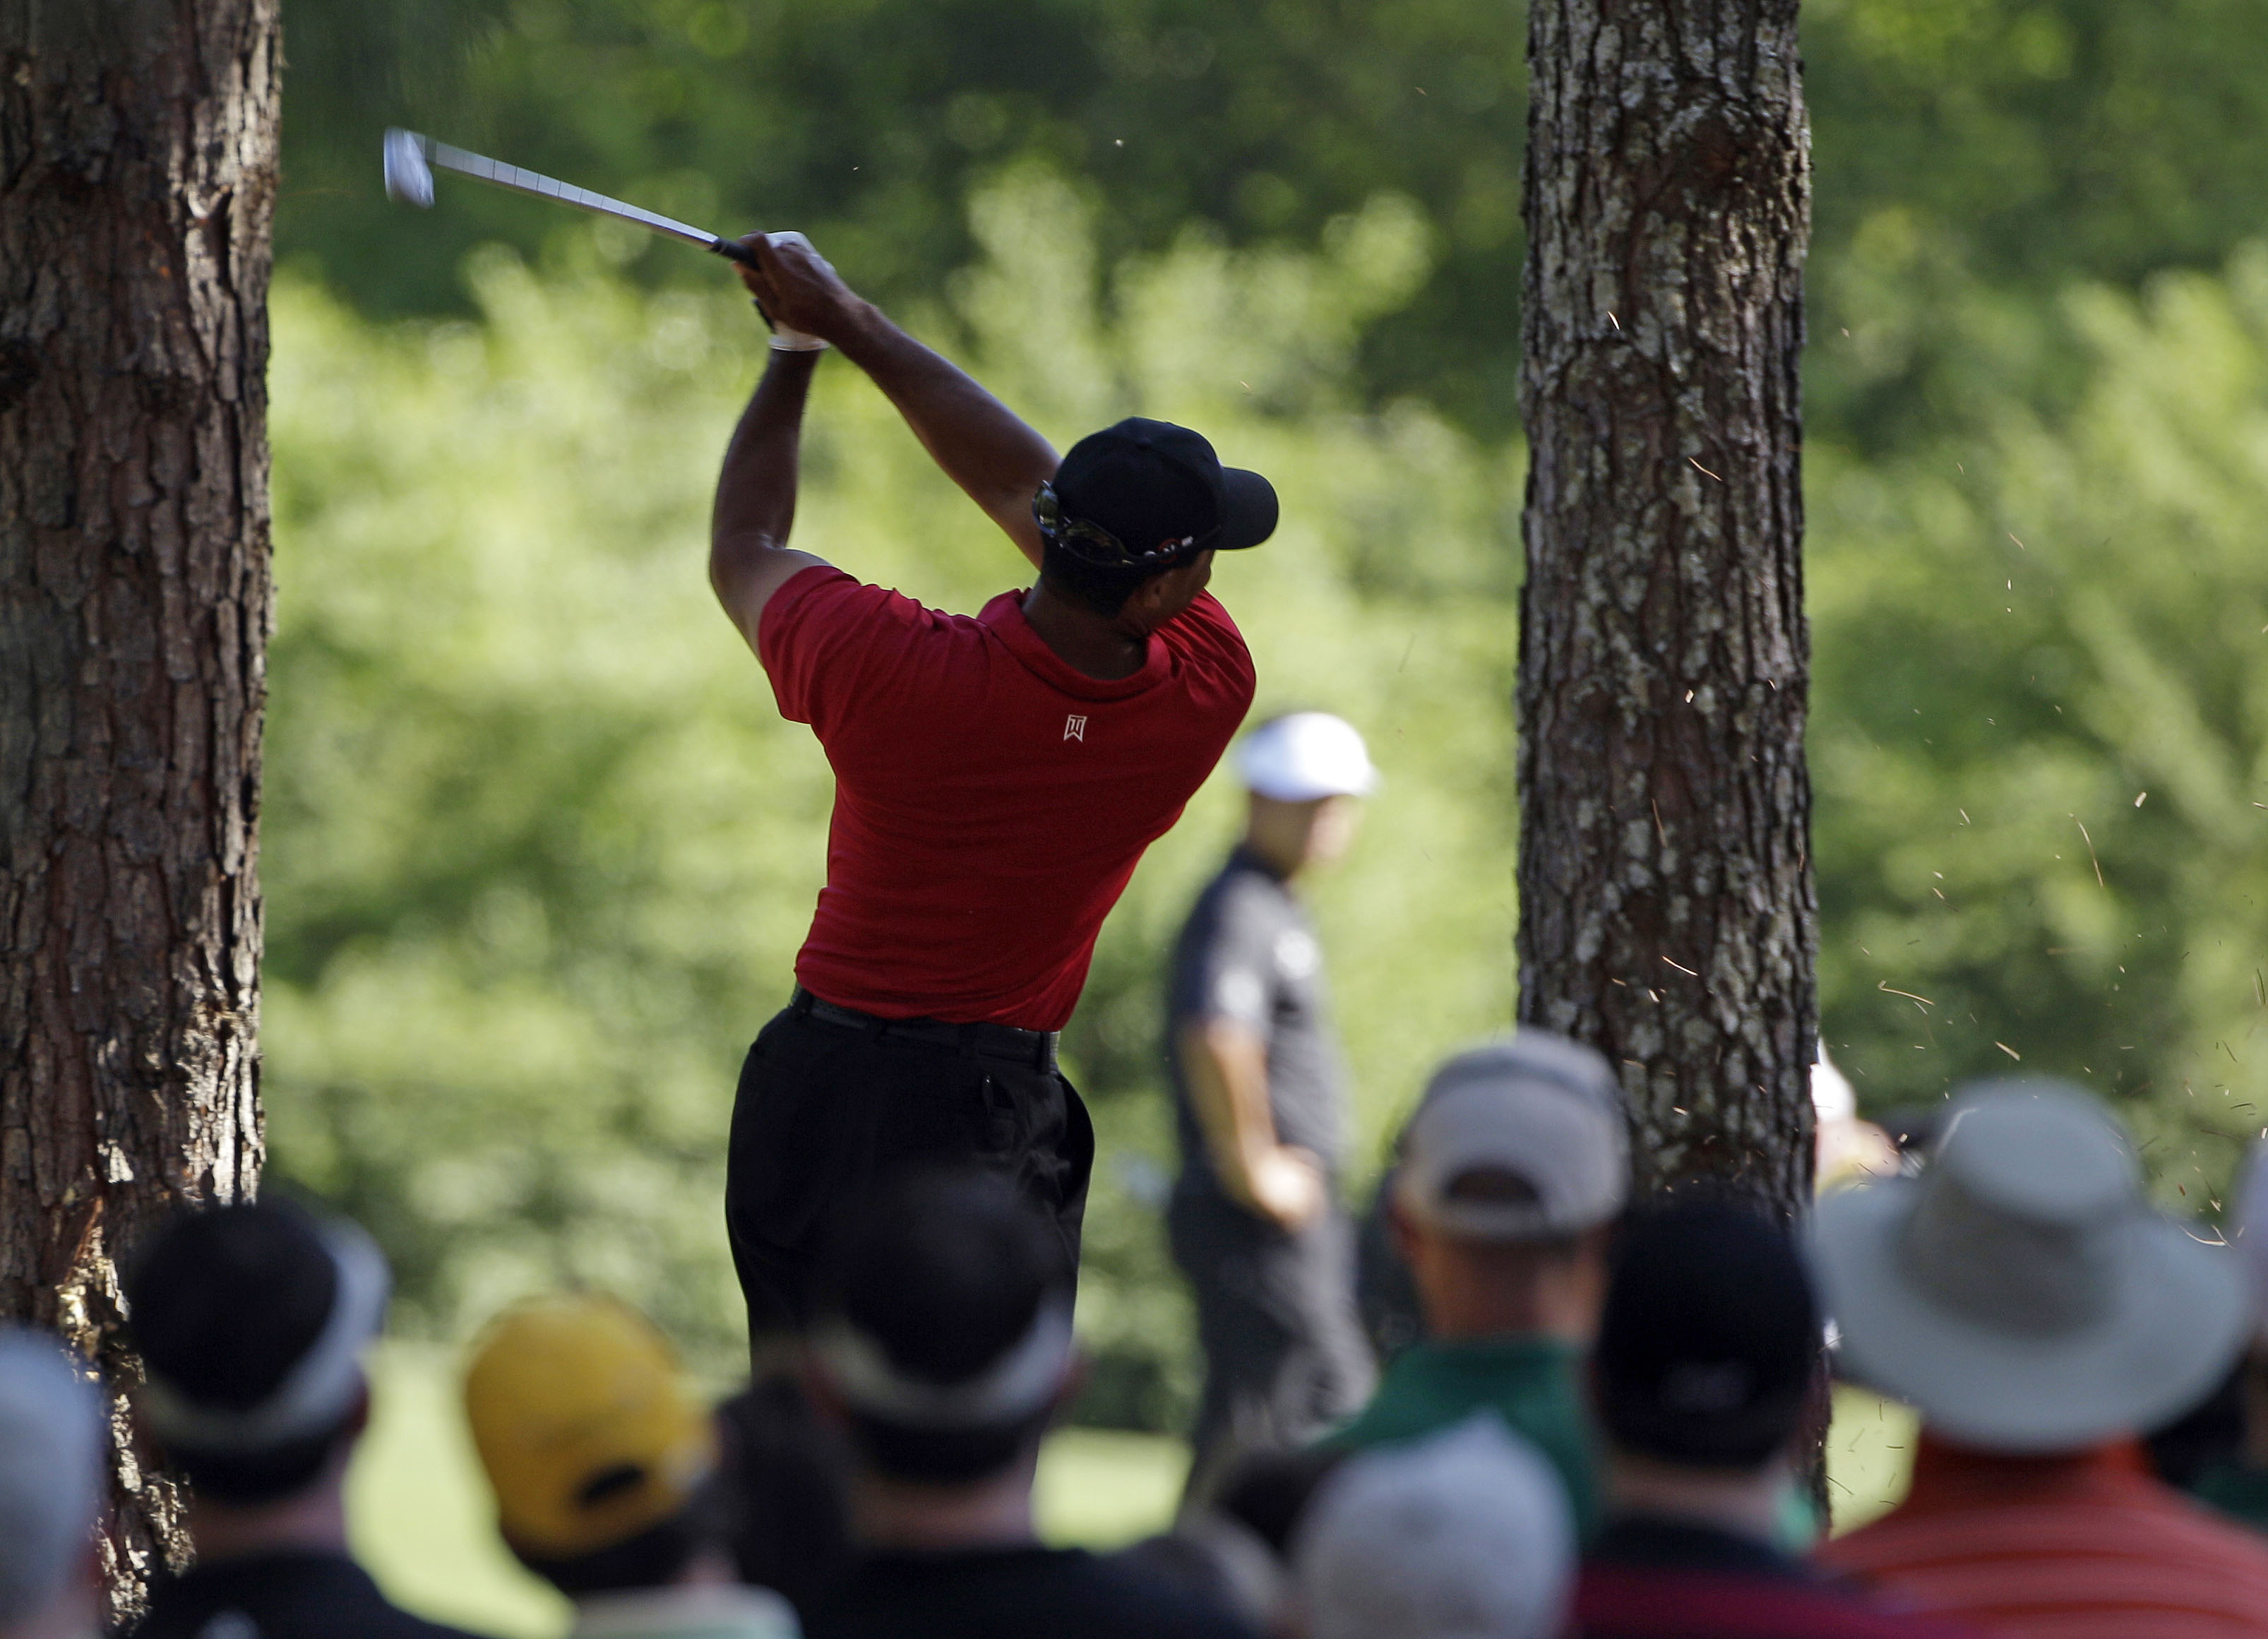 Tiger Woods plays his second shot on No. 11 during the final round of the Masters.